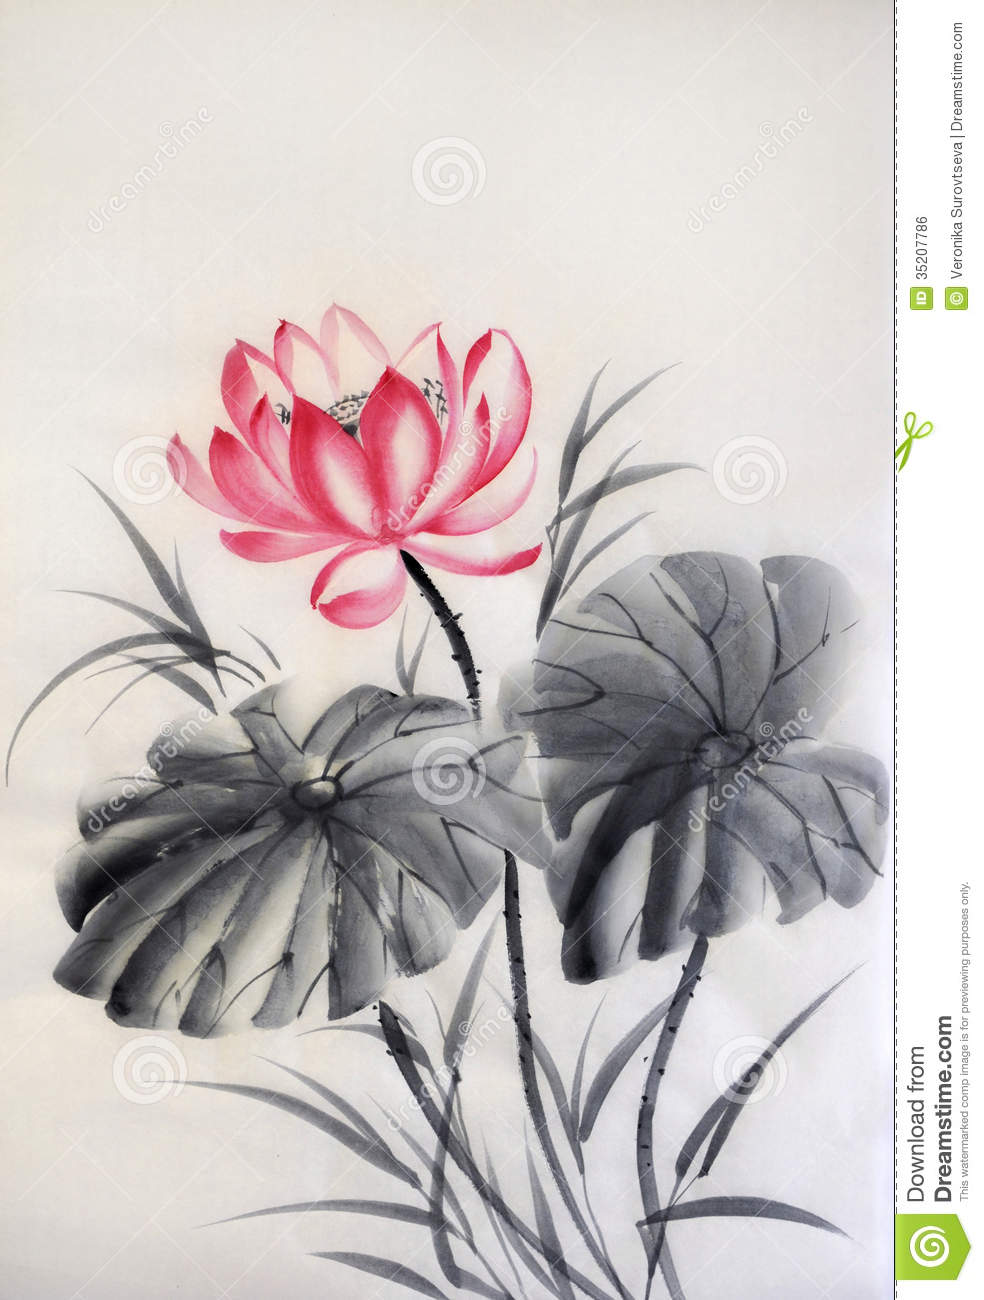 Chinese furthermore Royalty Free Stock Image Lotus Flower Two Leaves Watercolor Painting Original Art Asian Style Image35207786 moreover 117505 Arundina moreover Royalty Free Stock Photos Spa Background Image18952178 moreover Stock Illustration Background Stylized Tropical Plants Leaves Flowers Image51247144. on bamboo orchid